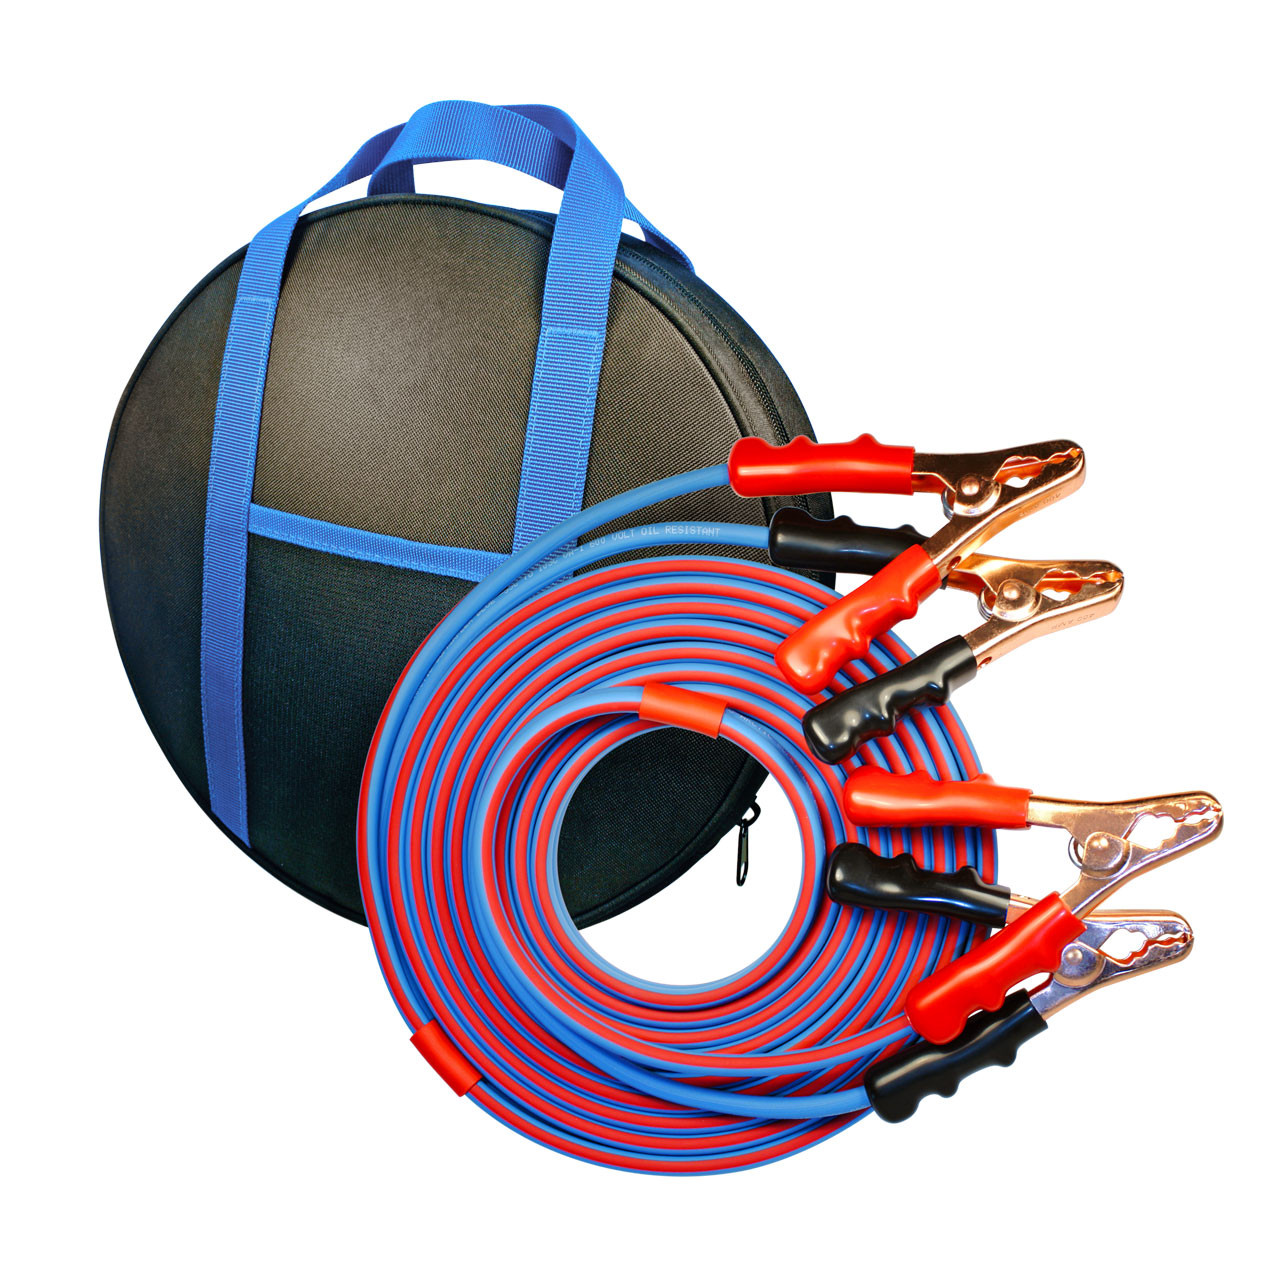 5 qty 14 awg Marine Black tin copper wire jumpers for switch panels For 5 g...